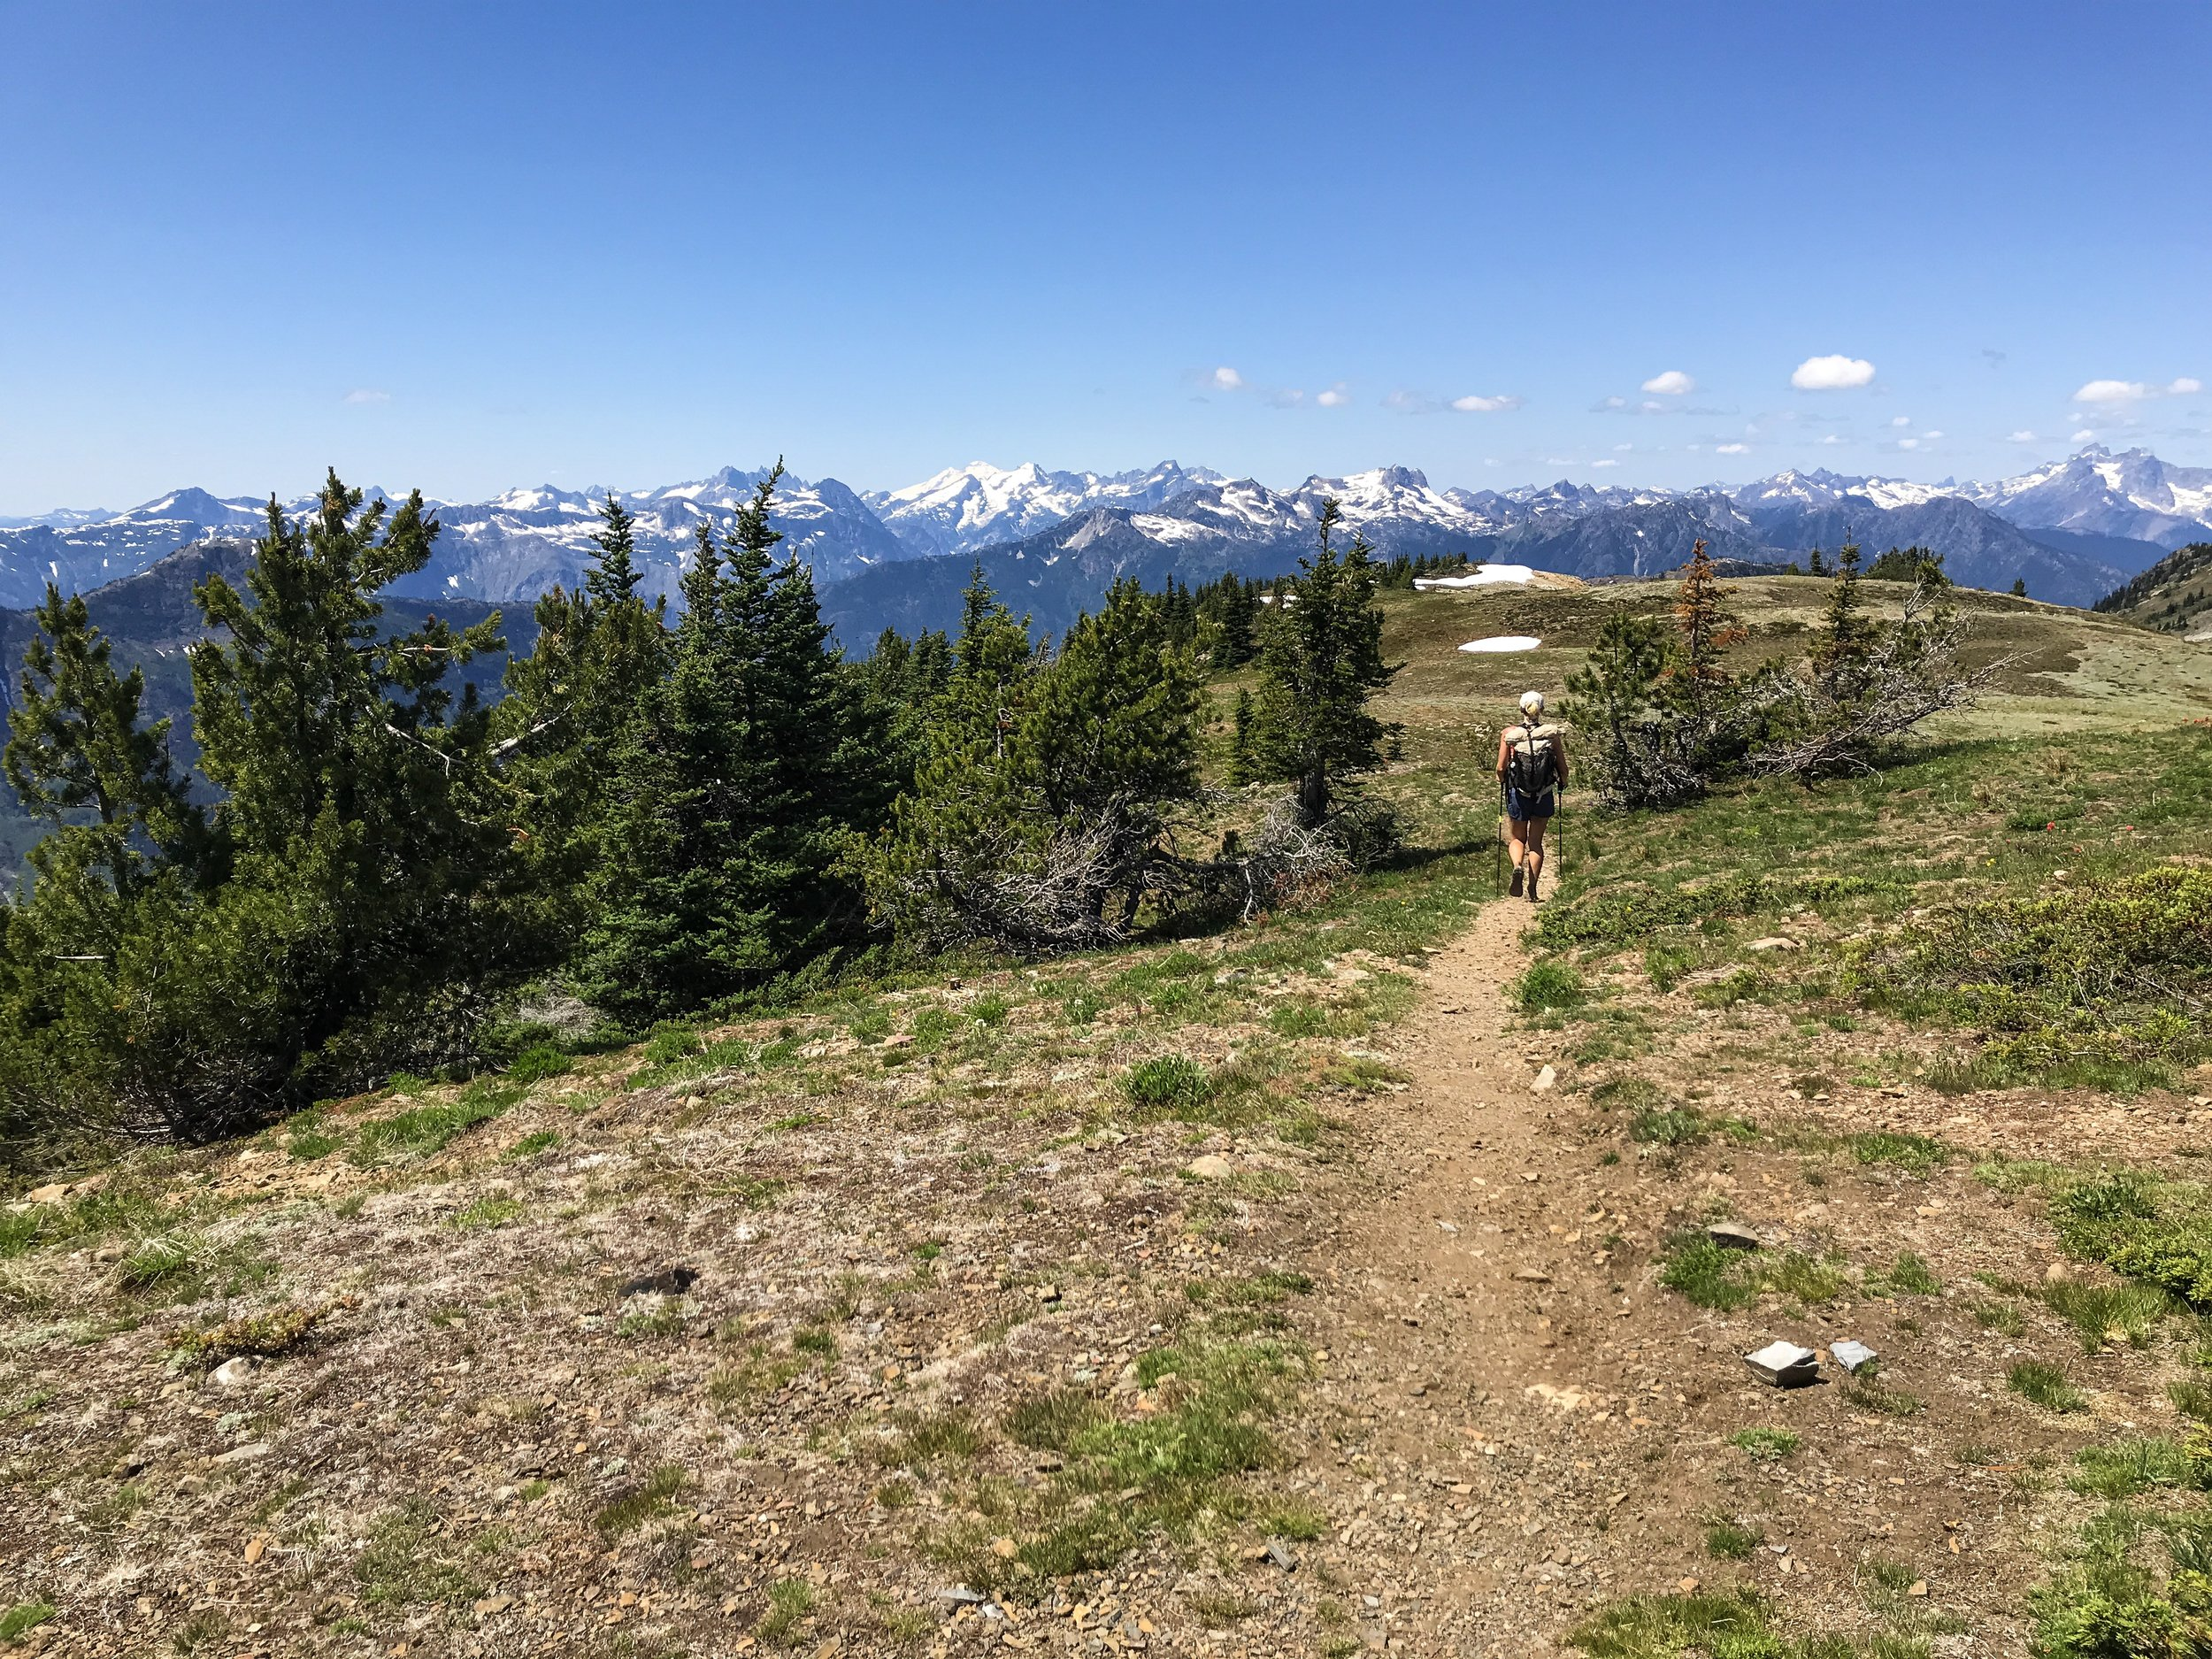 Starting the downhill from Devil's Dome